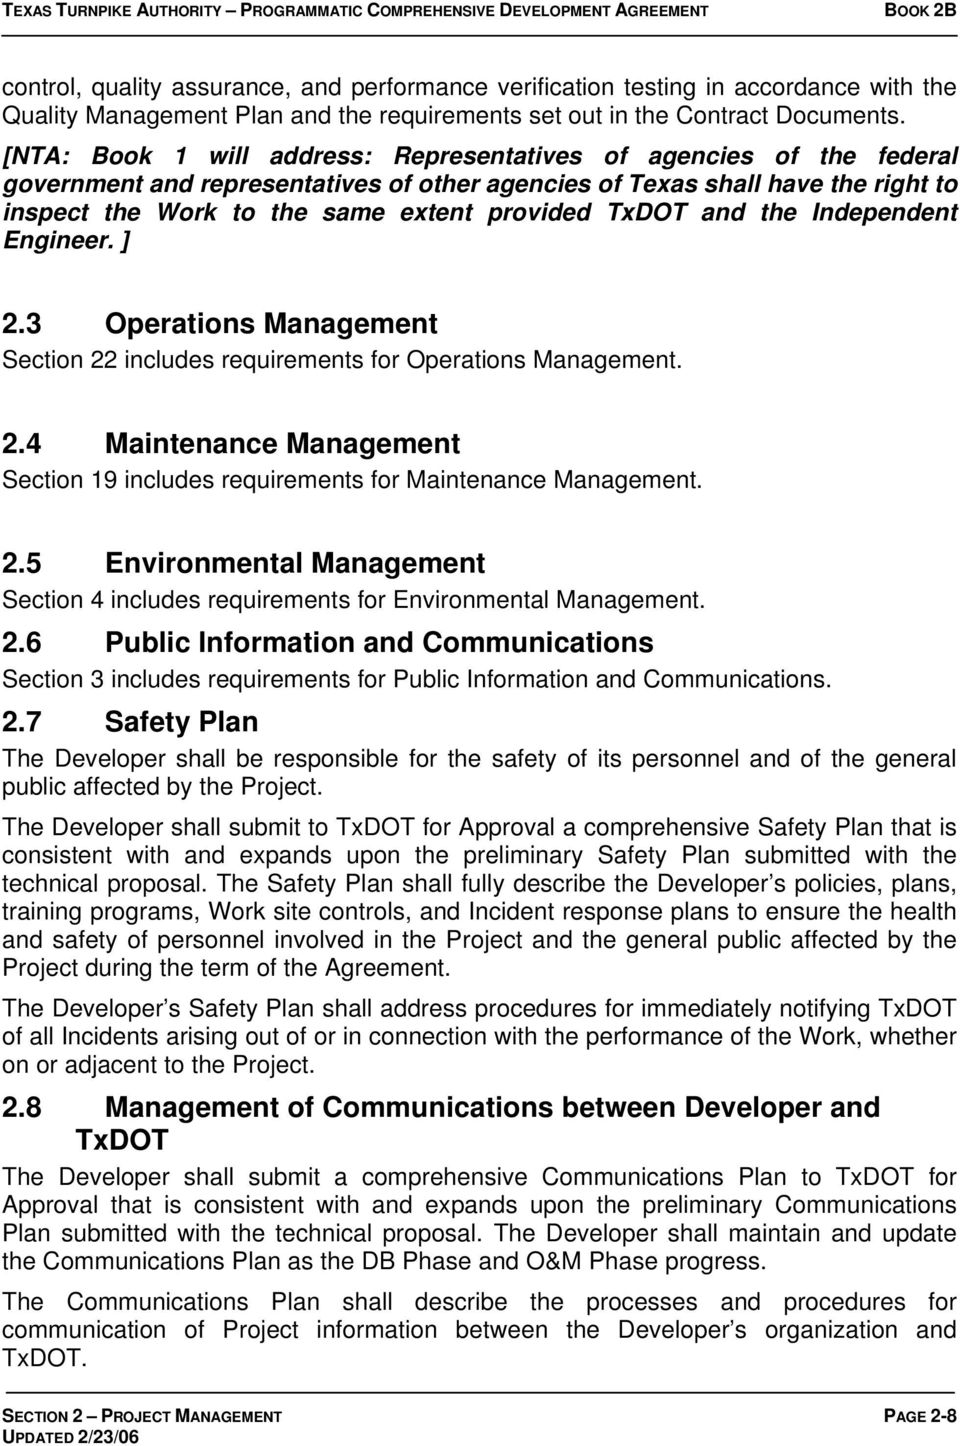 TxDOT and the Independent Engineer. ] 2.3 Operations Management Section 22 includes requirements for Operations Management. 2.4 Maintenance Management Section 19 includes requirements for Maintenance Management.